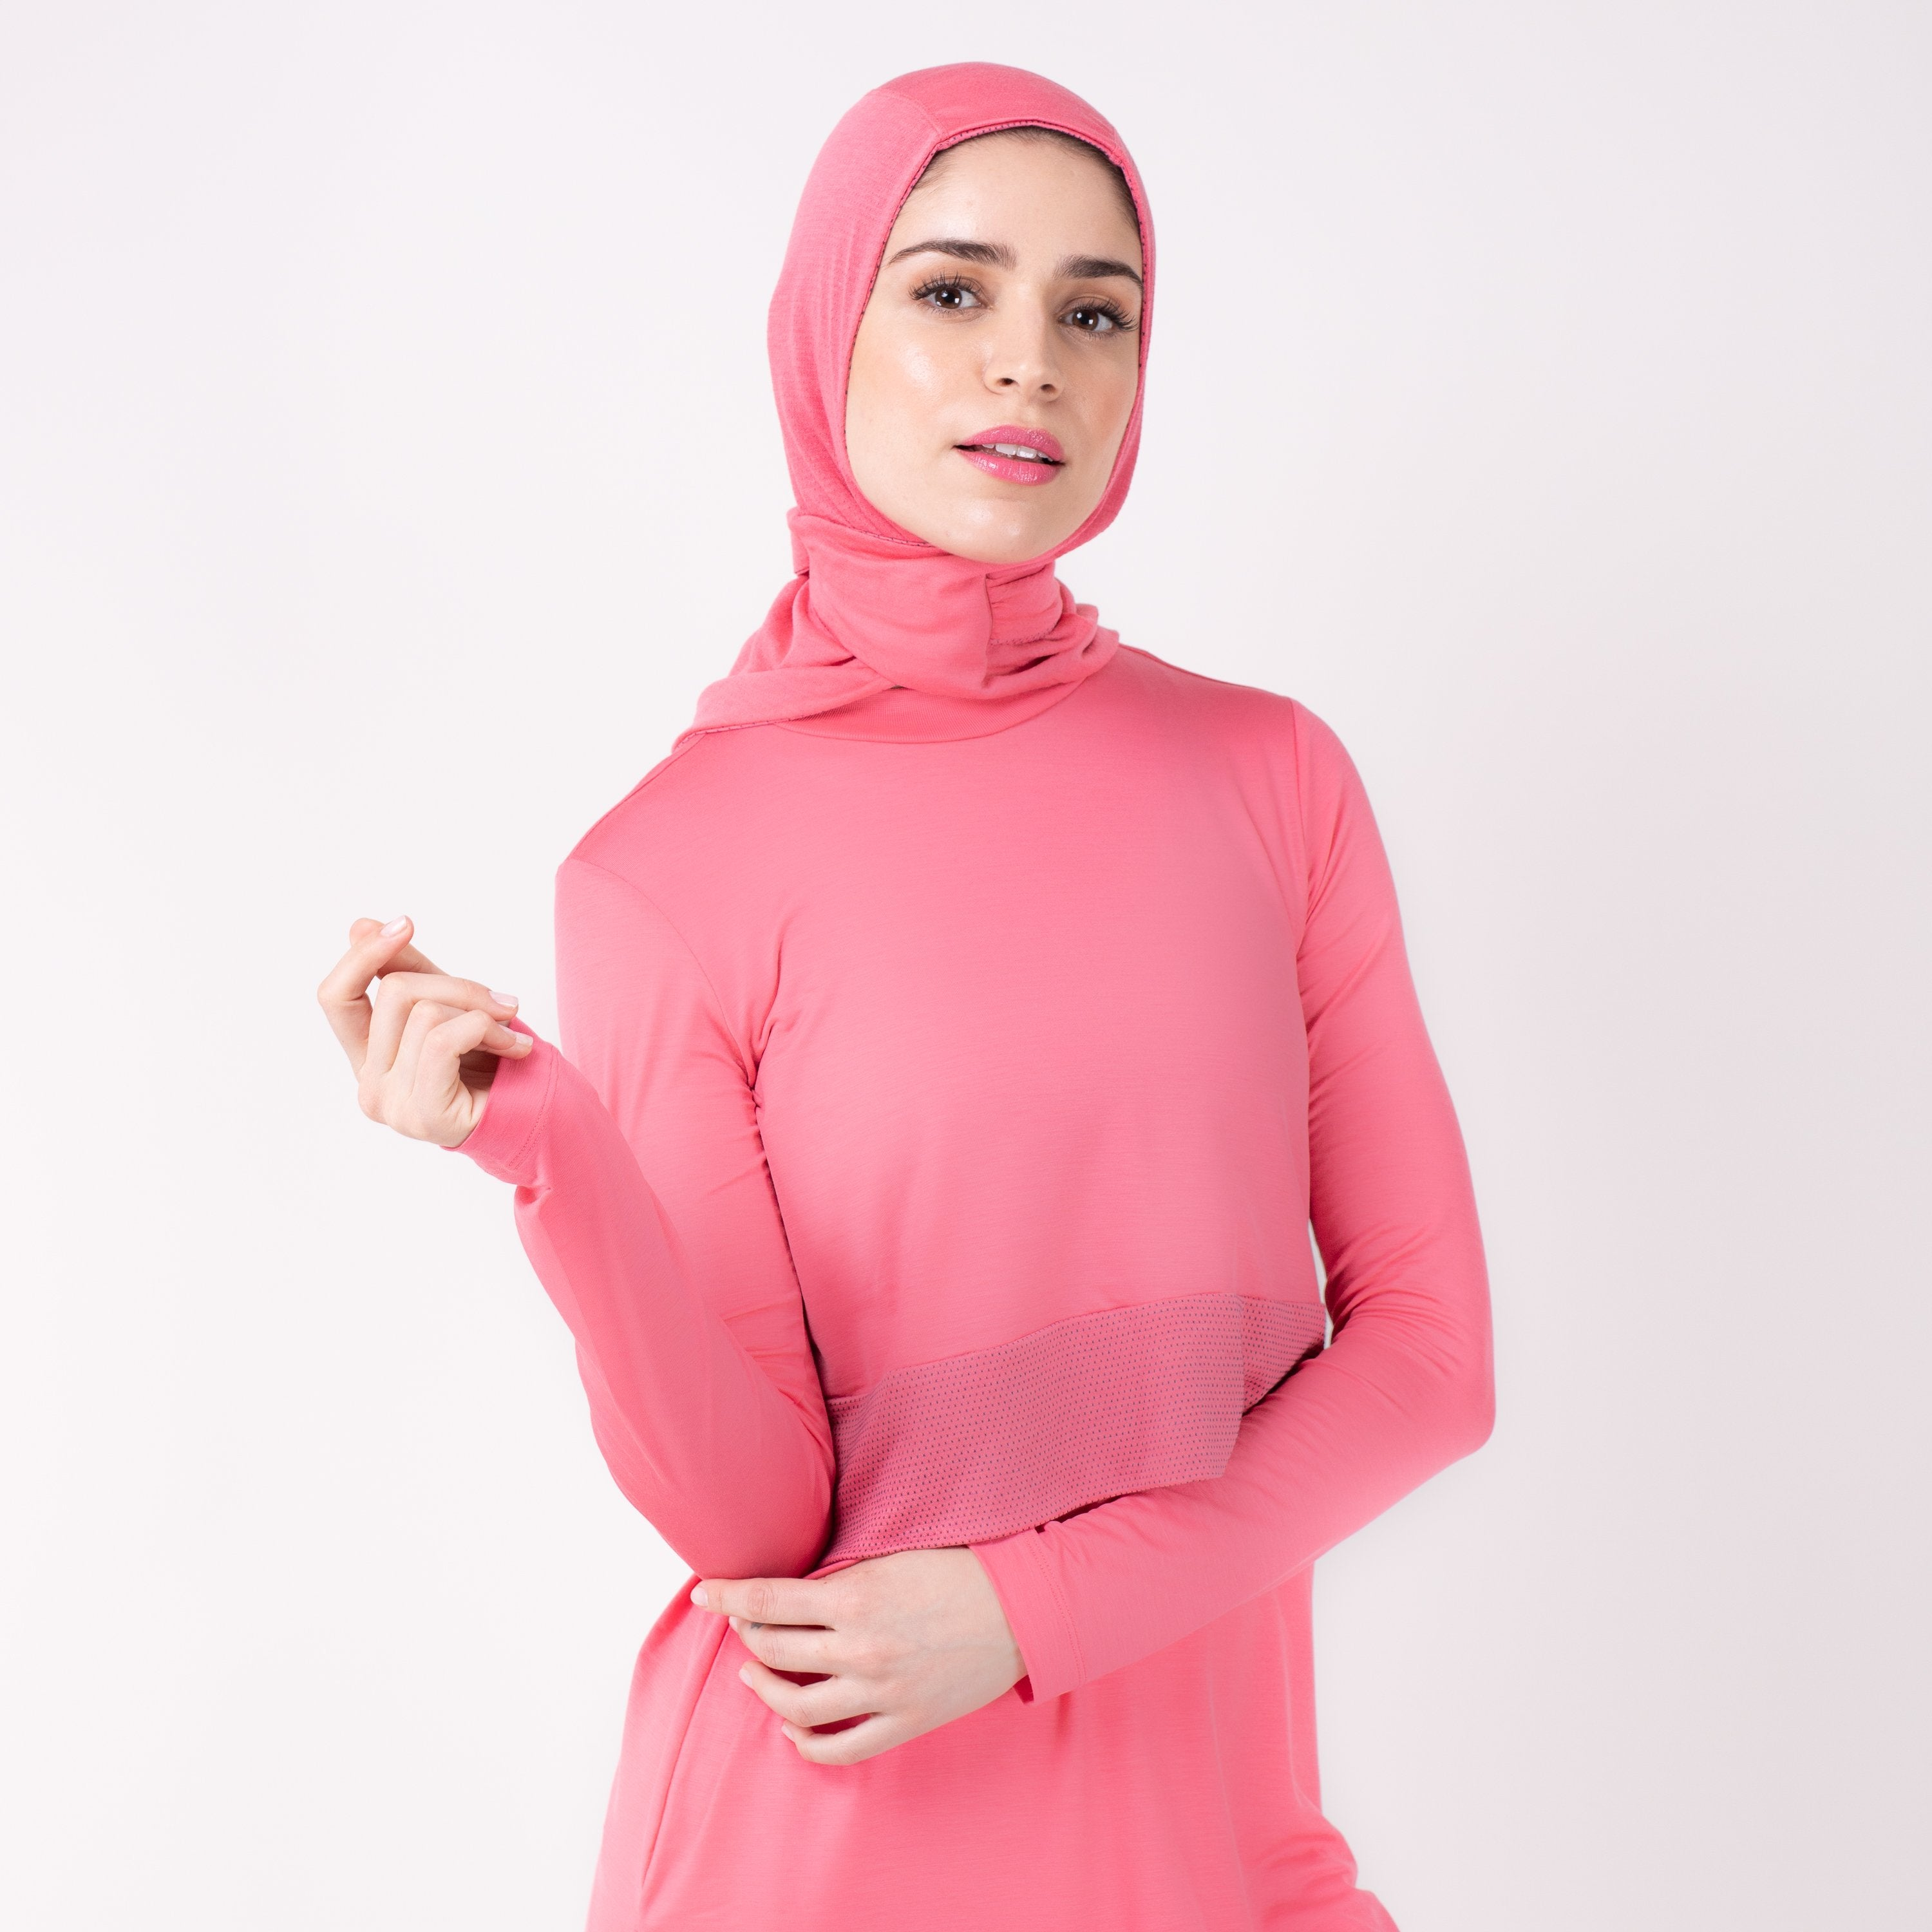 Woman wearing a pink shirt with a matching pink HAWA hijab.